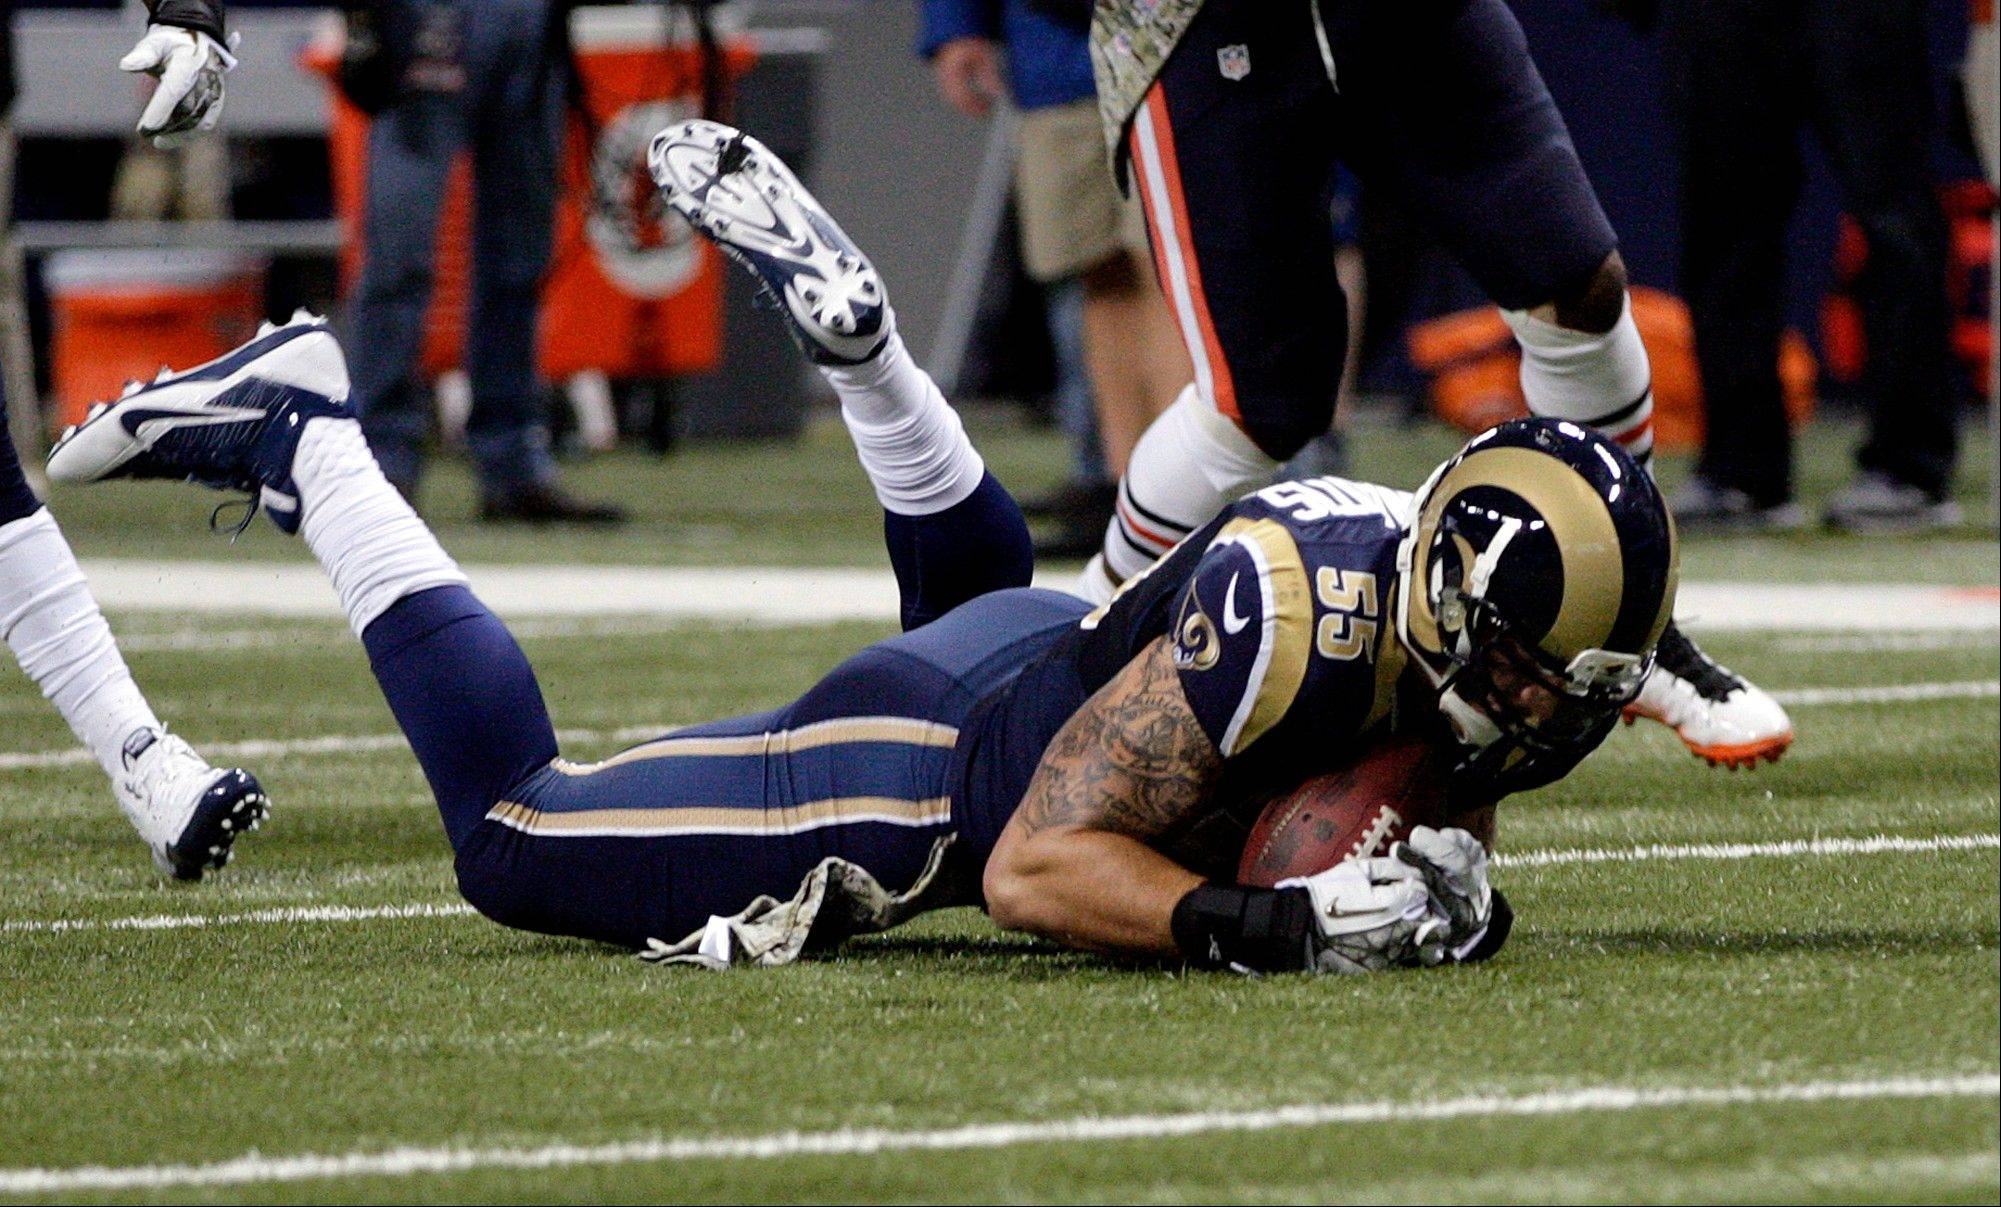 St. Louis Rams linebacker James Laurinaitis recovers a fumble by Chicago Bears running back Matt Forte during the first quarter.